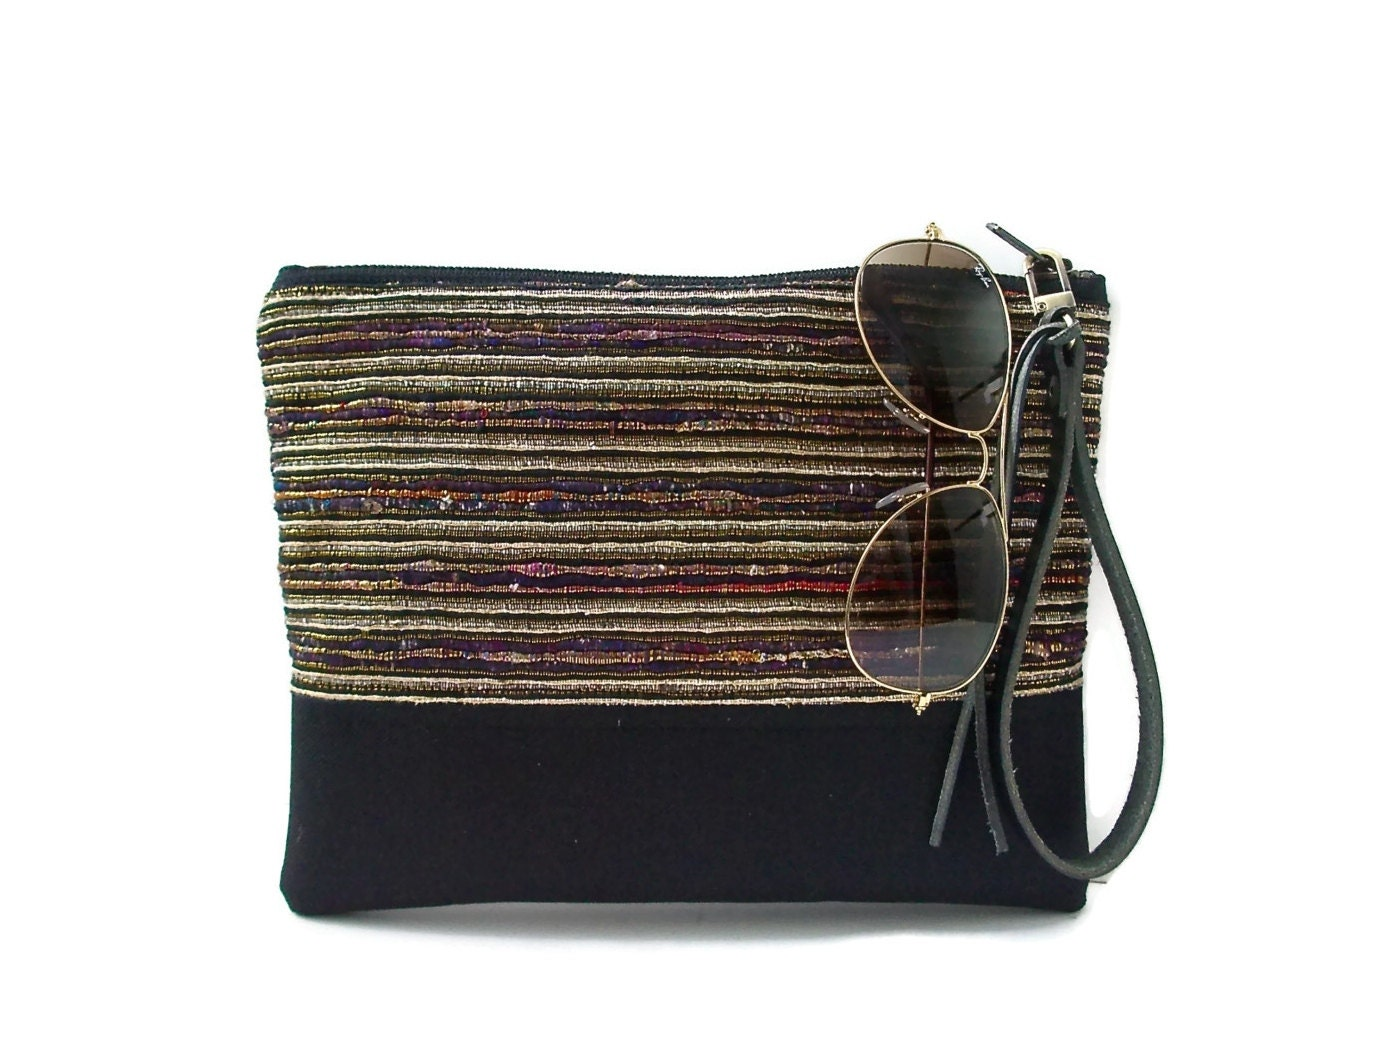 Summer Clutch Bags Woven Bag with Wrist Strap by ...